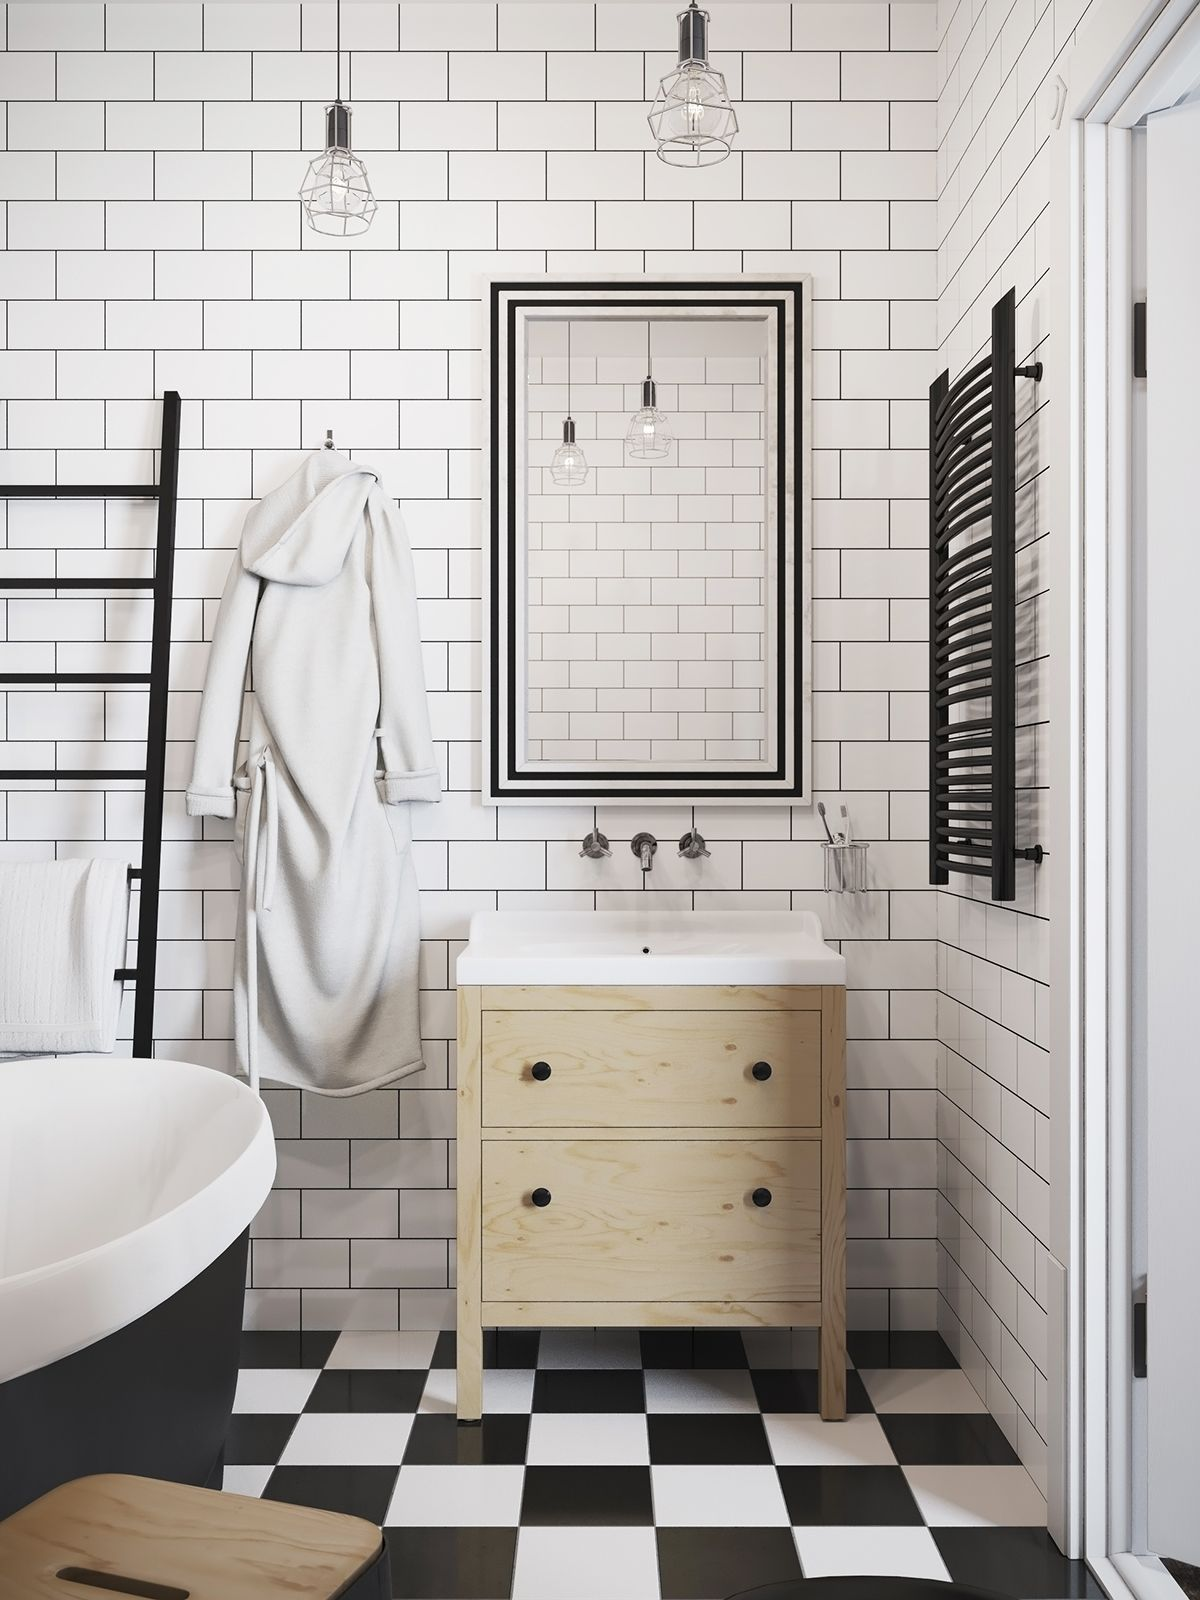 Finally the bathroom with its chic white tile walls and checked ...